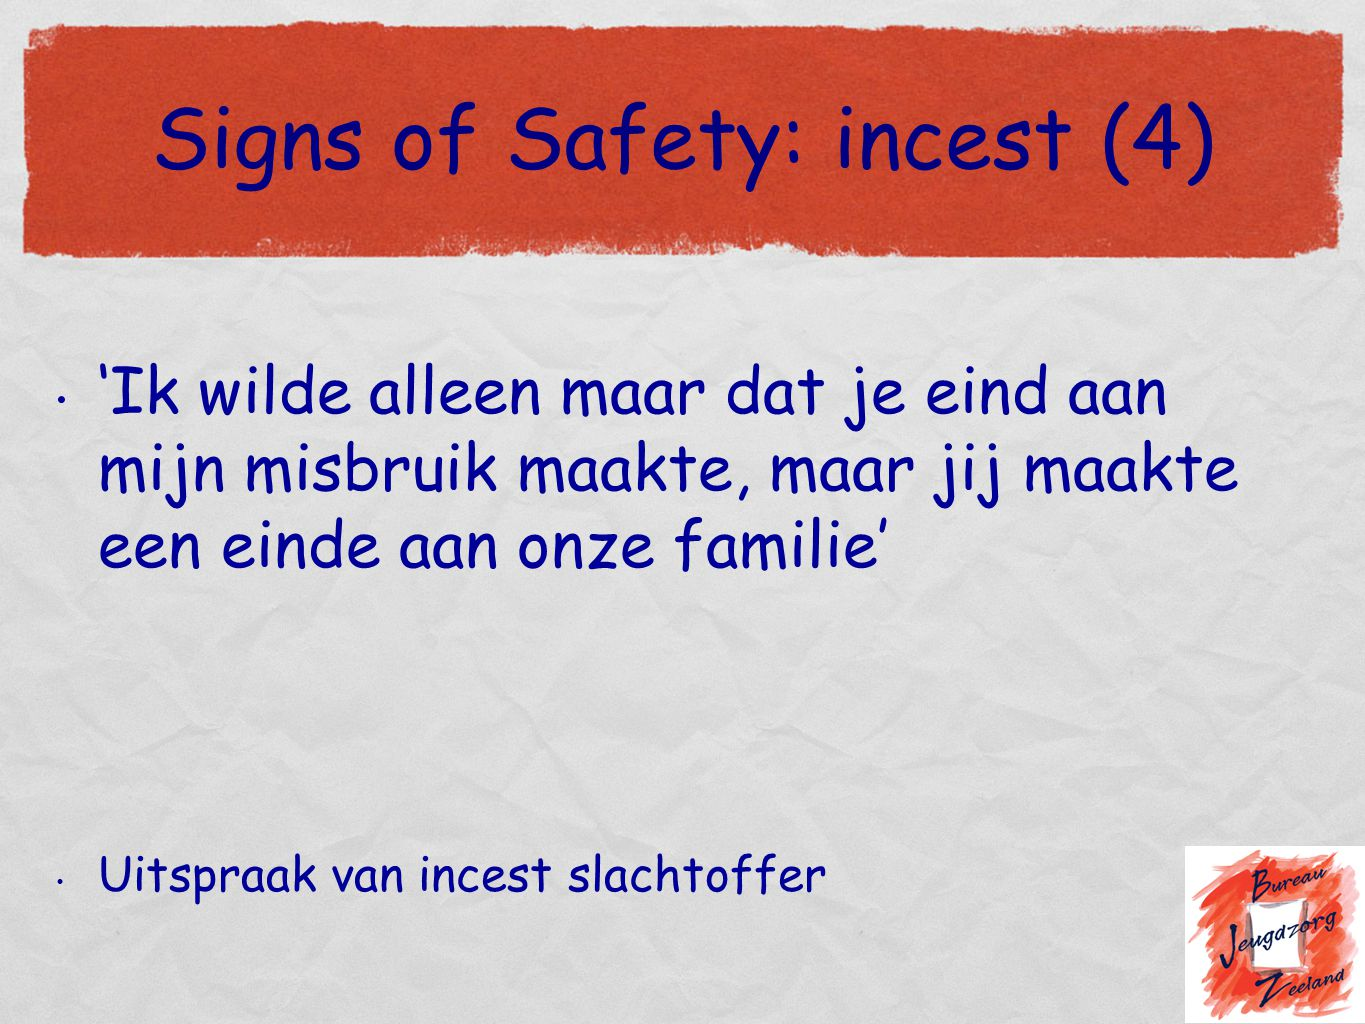 Signs of Safety: incest (4)